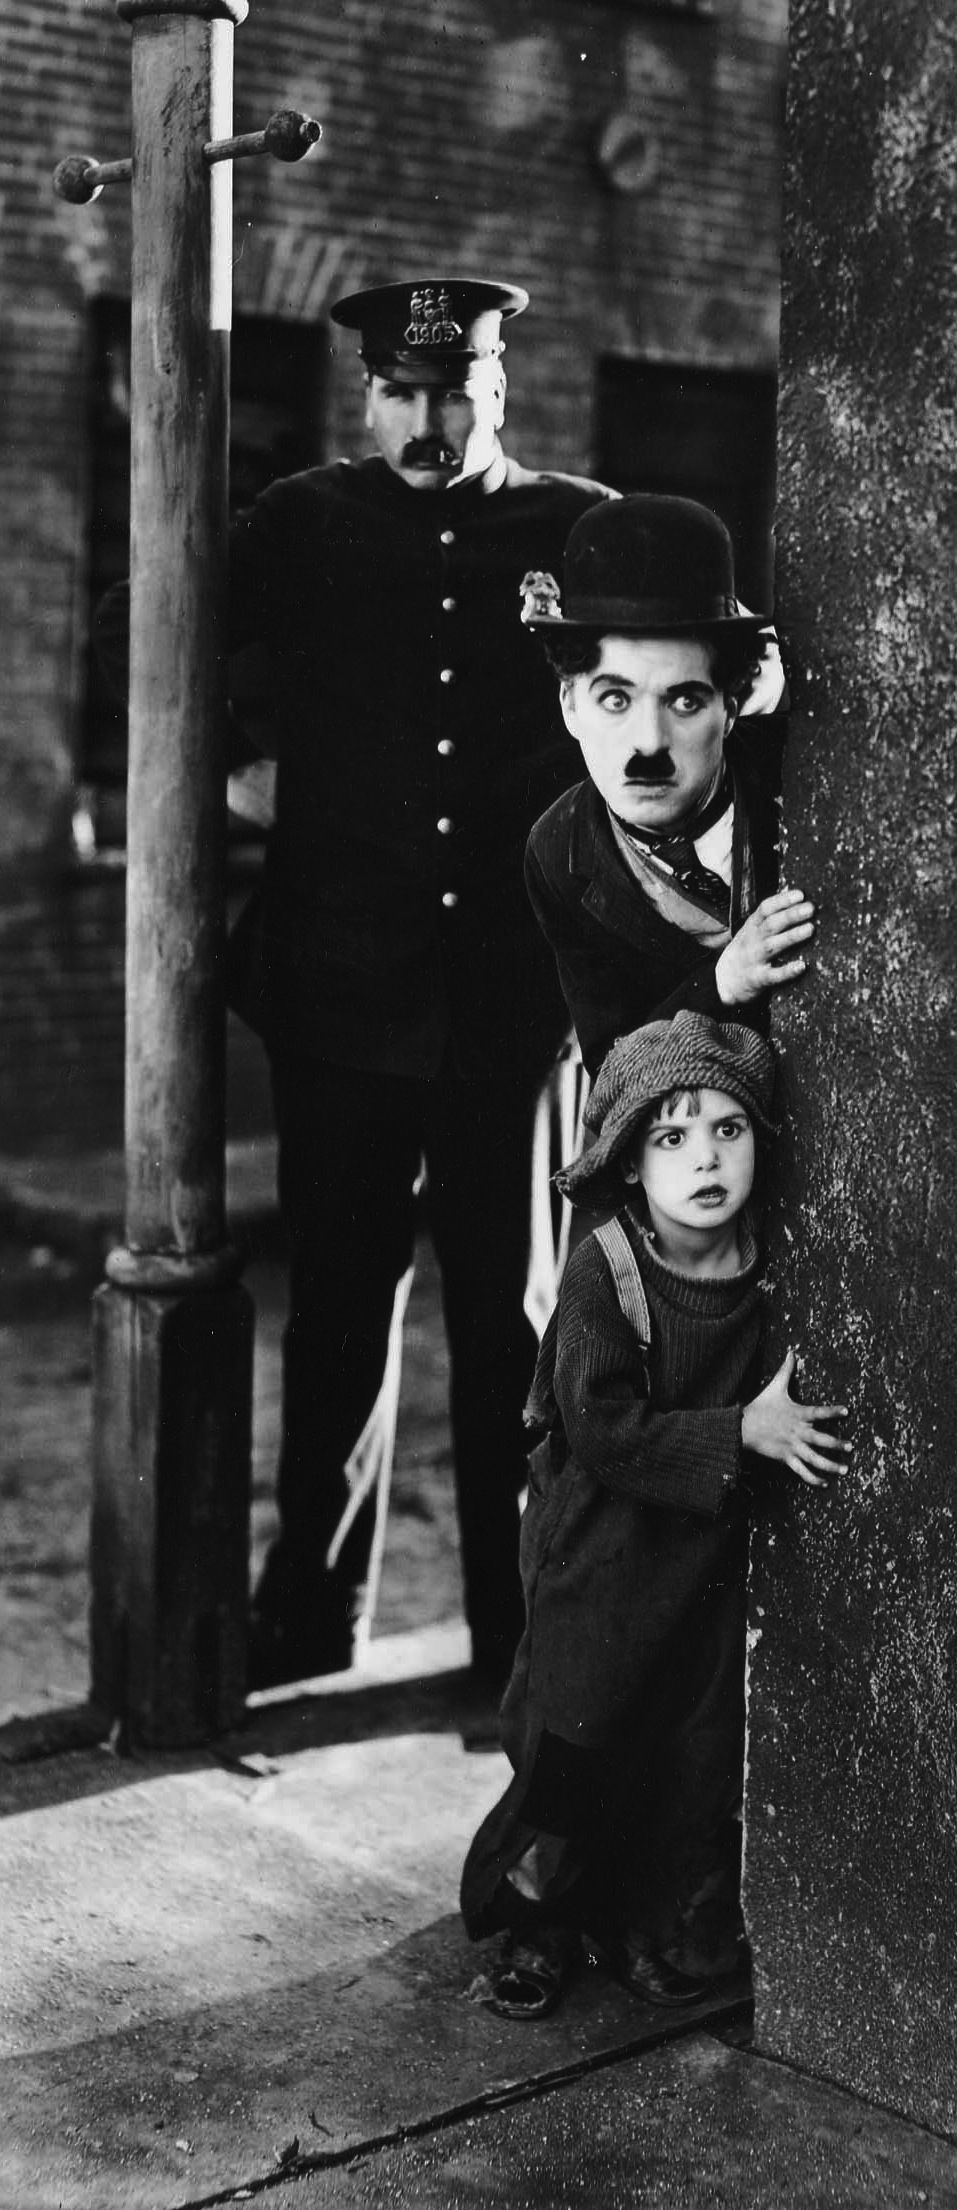 Uncle fester the addams family pinterest - Charlie Chaplin As The Tramp And Jackie Coogan Uncle Fester On The Addams Family